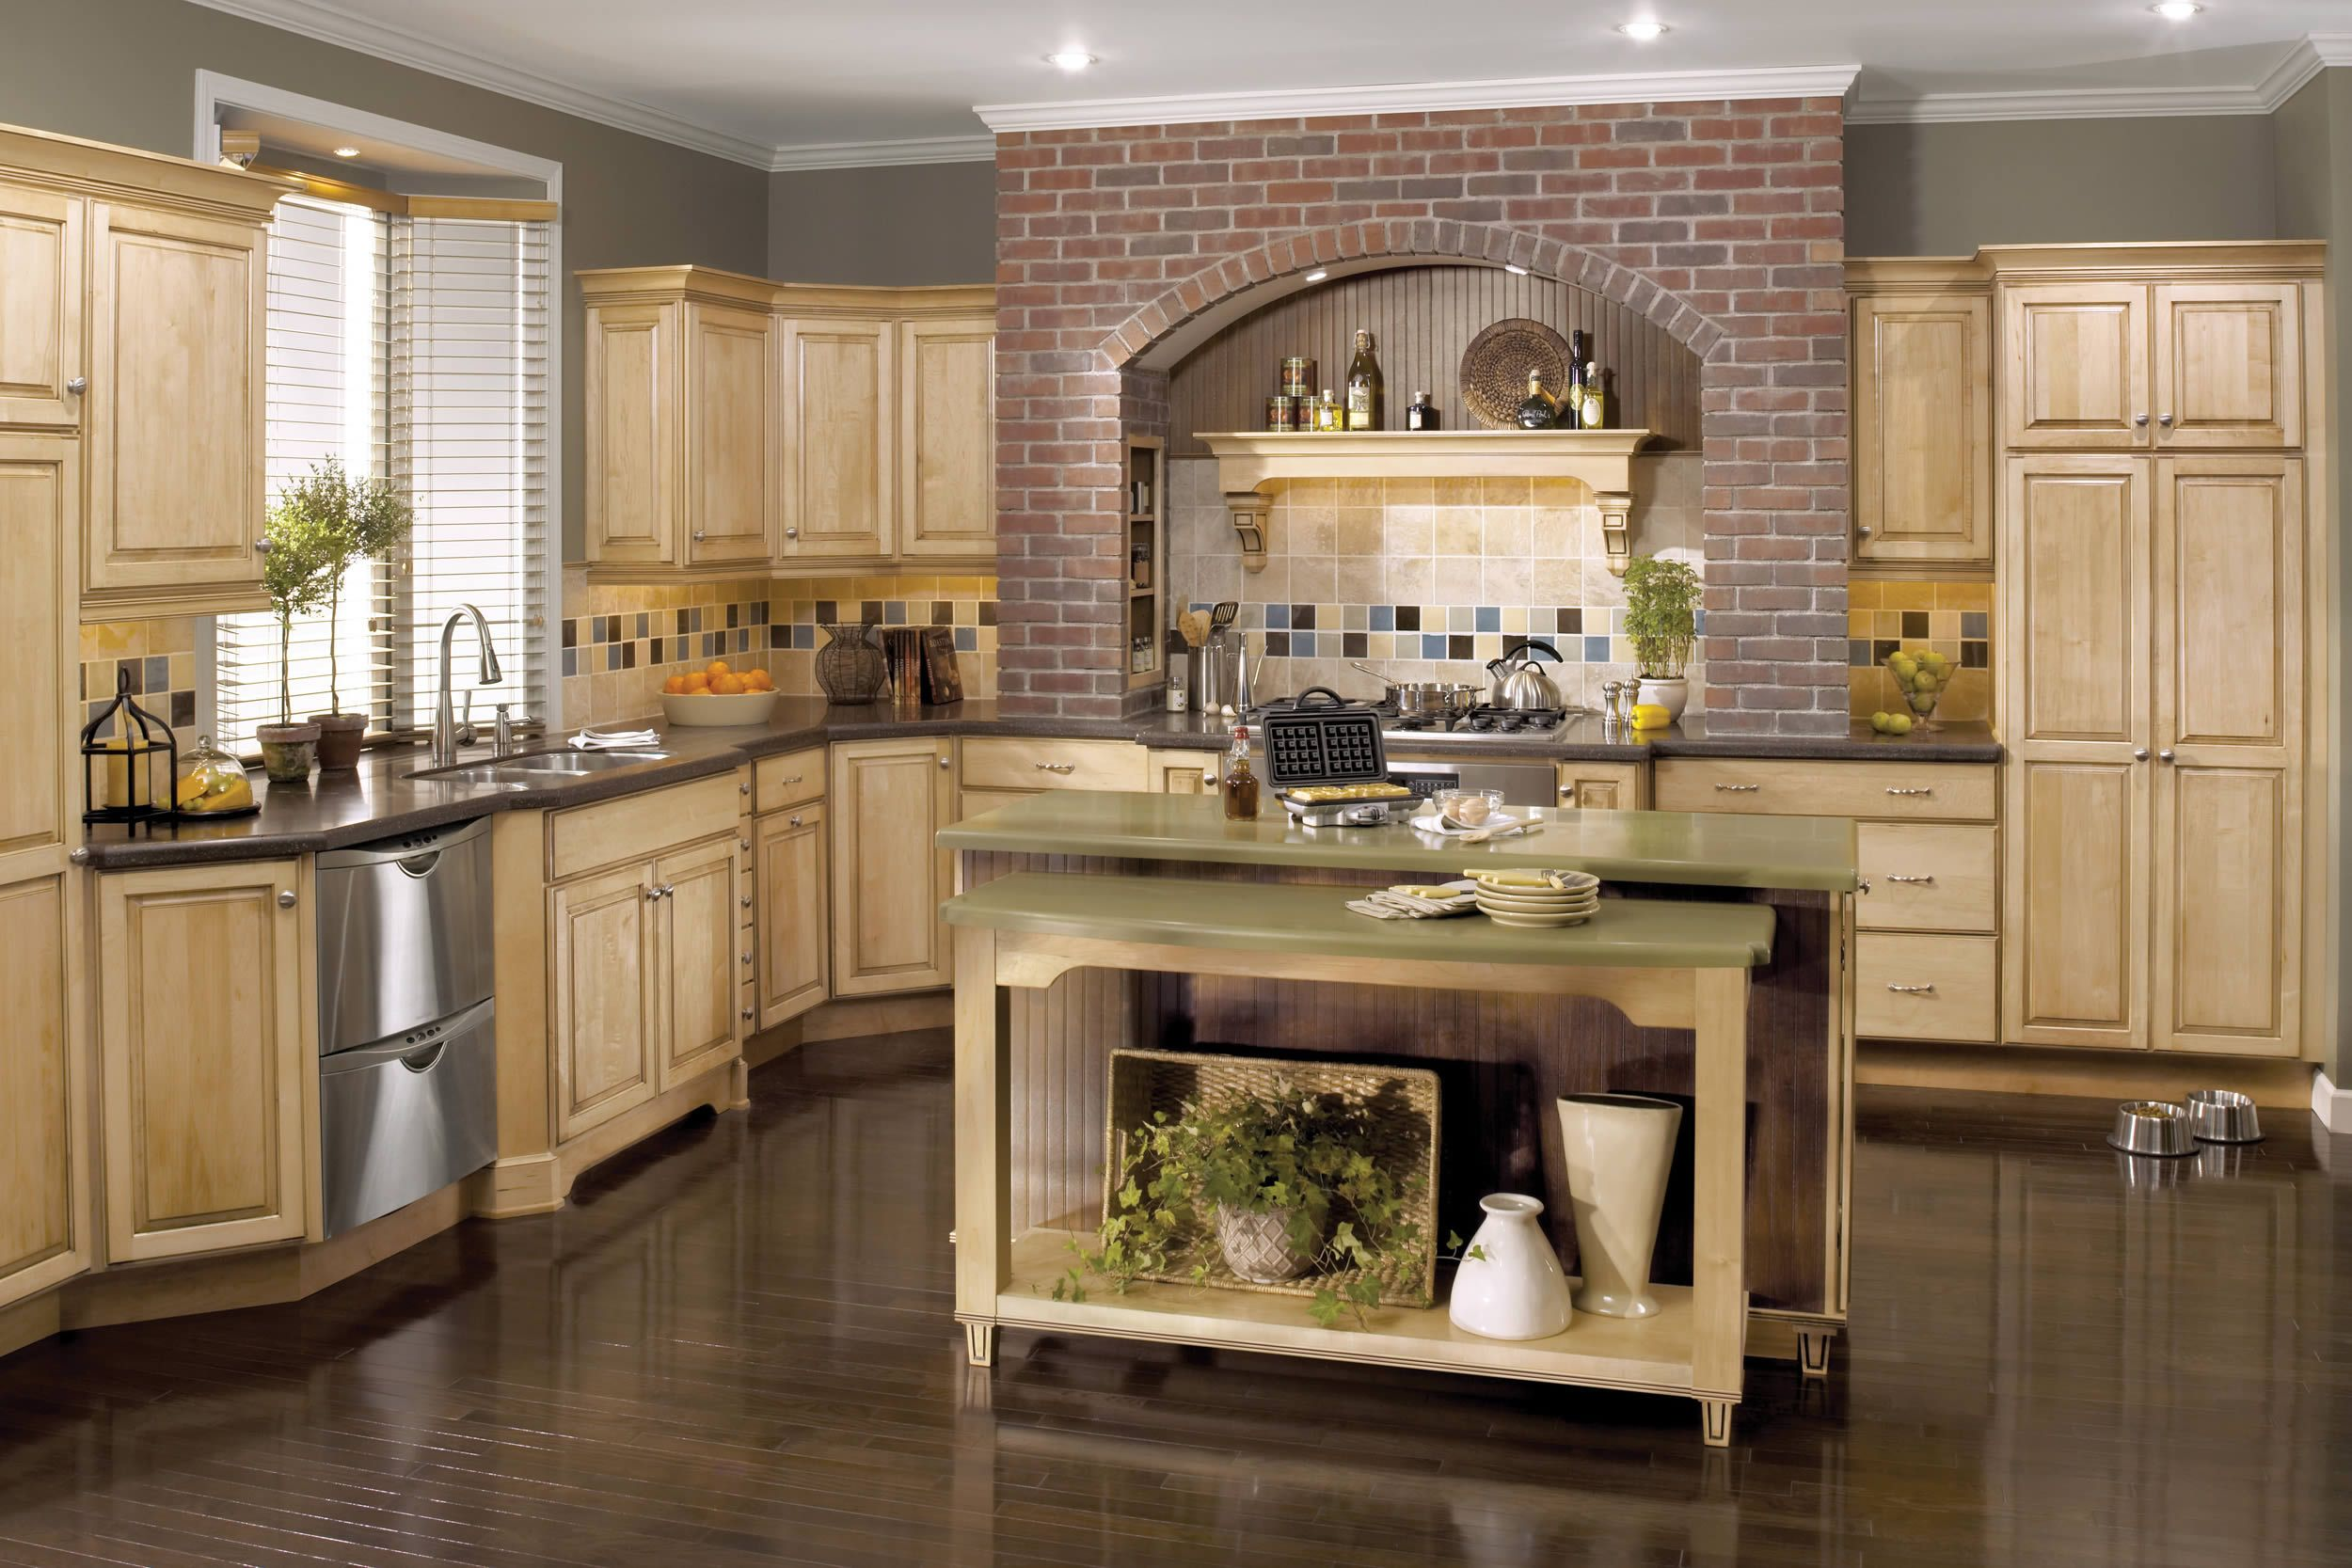 Cabinets and Countertops - Zeeland Lumber and Supply (With ...